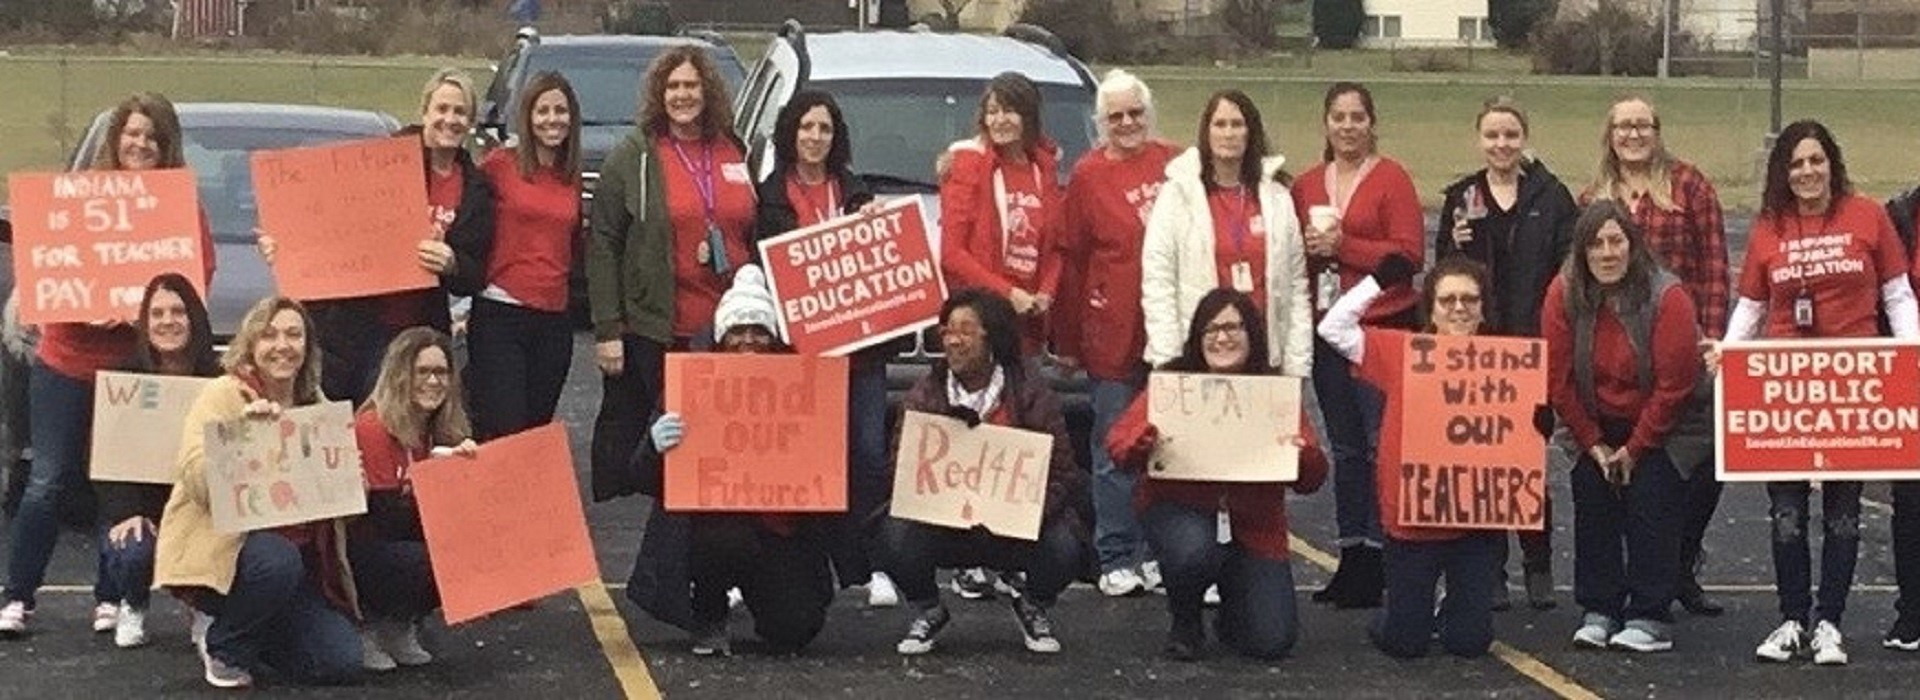 Teachers support Red 4 Ed with signs